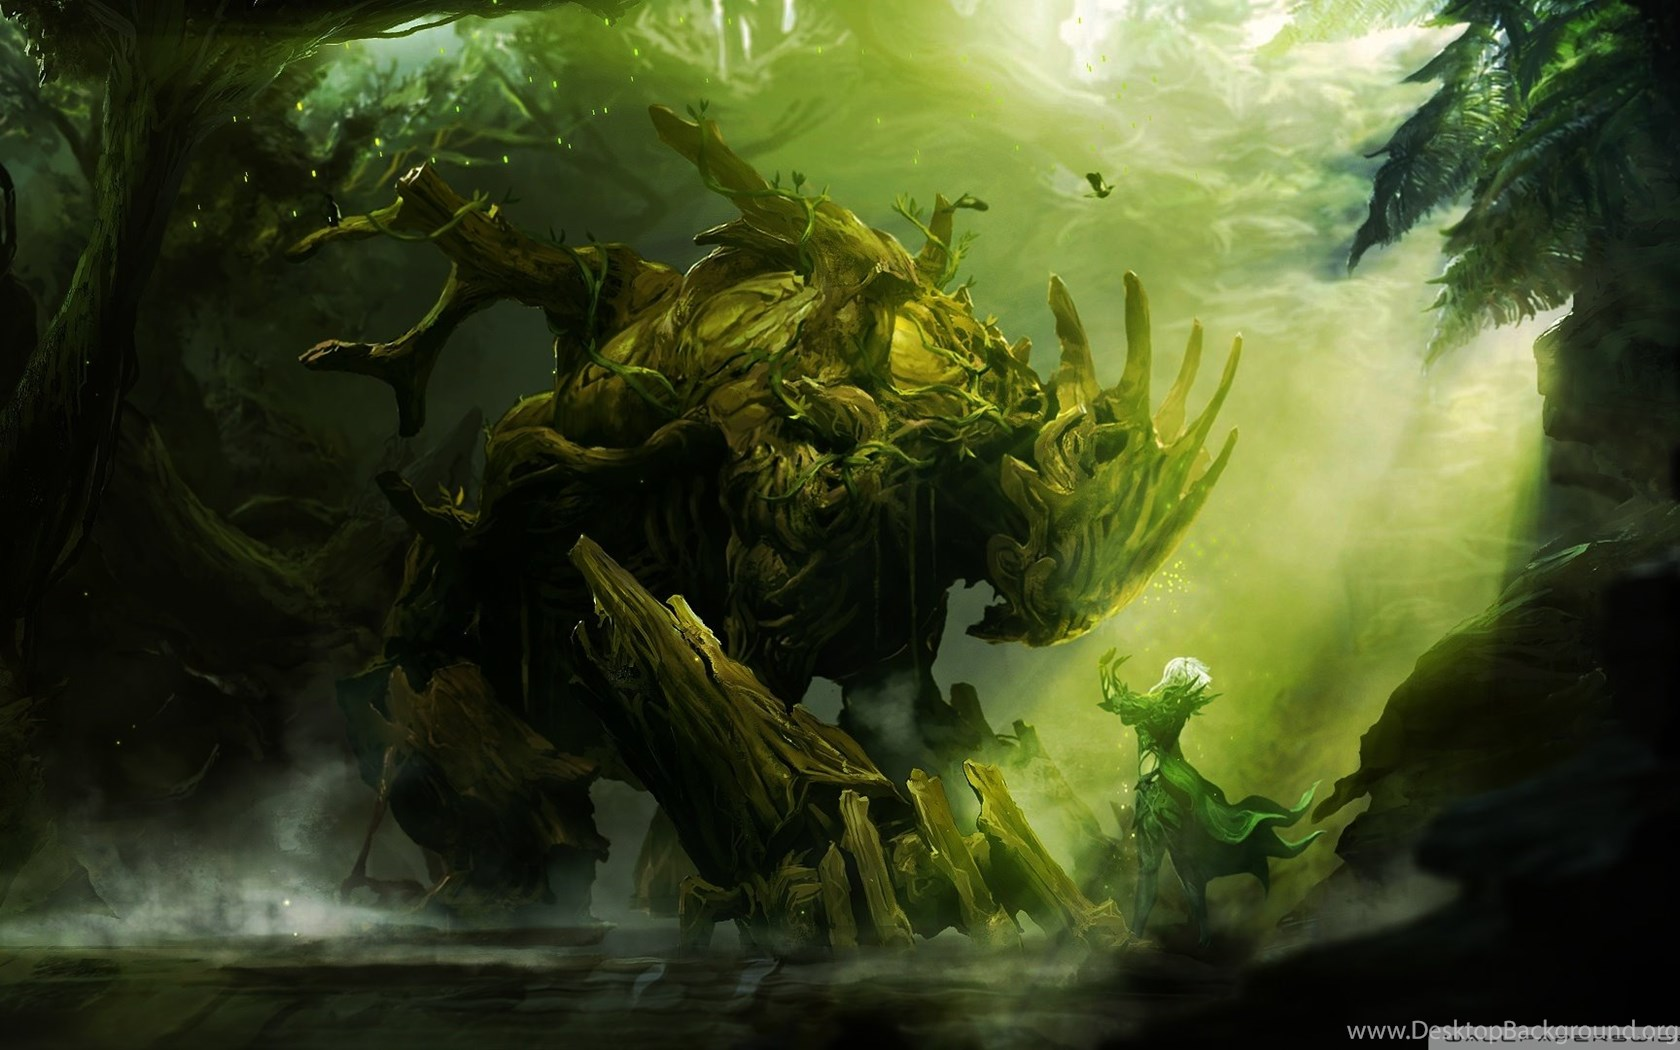 Guild Wars 2 Wallpapers 1920x1080 Desktop Background